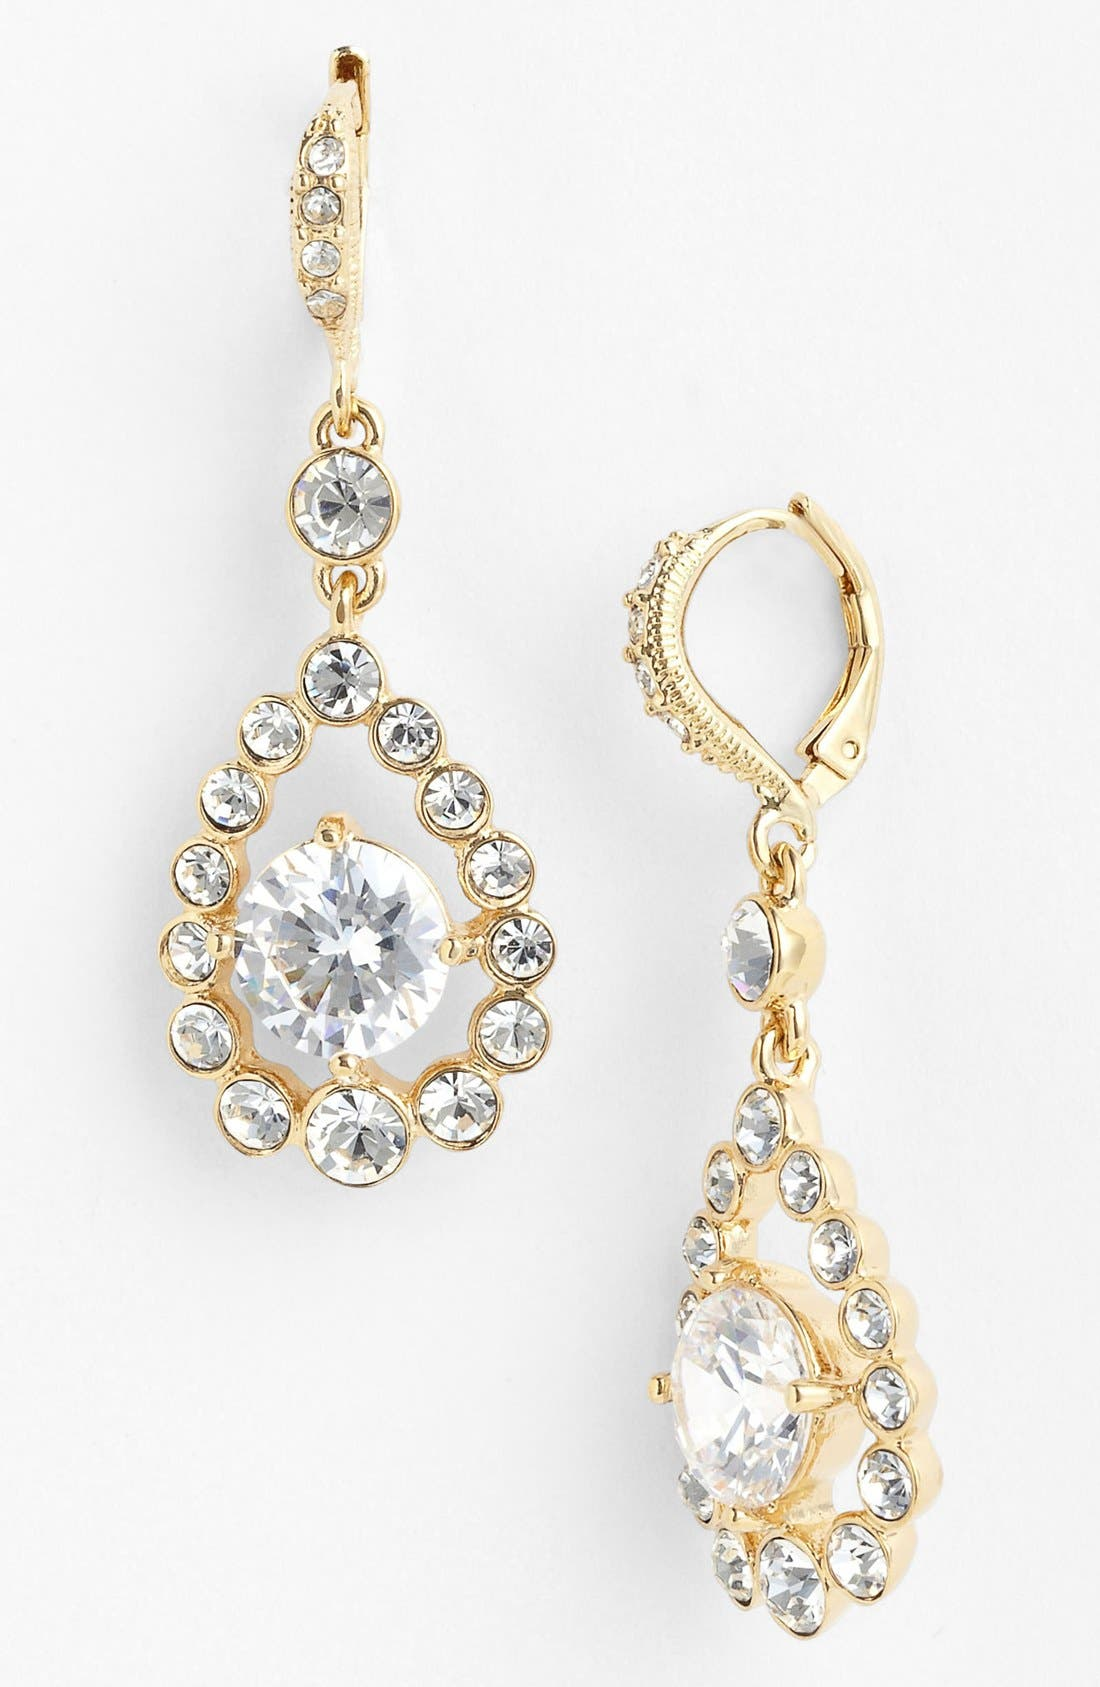 Main Image - Givenchy Teardrop Earrings